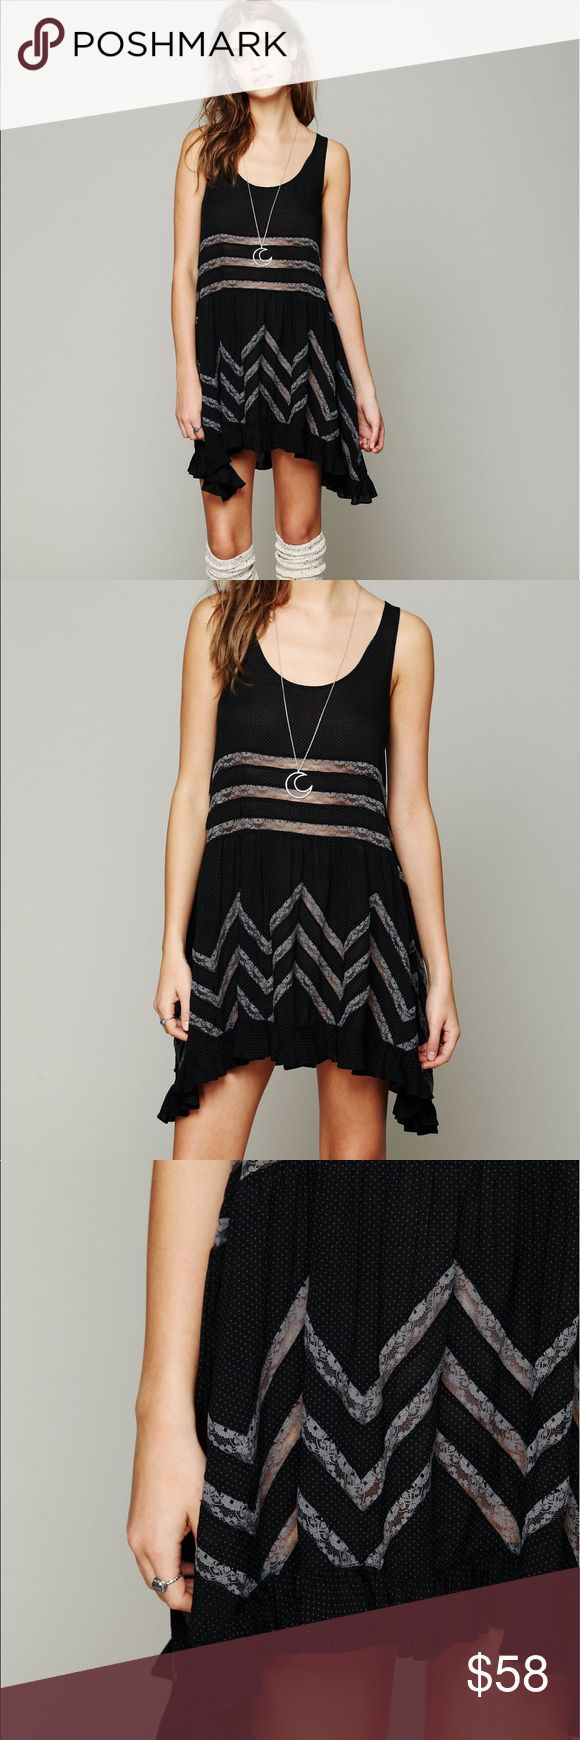 {free people} trapeze & voile slip black polkadot The classic Free People slip. Excellent condition. Still for sale at full price on the Fp website. Free People Dresses